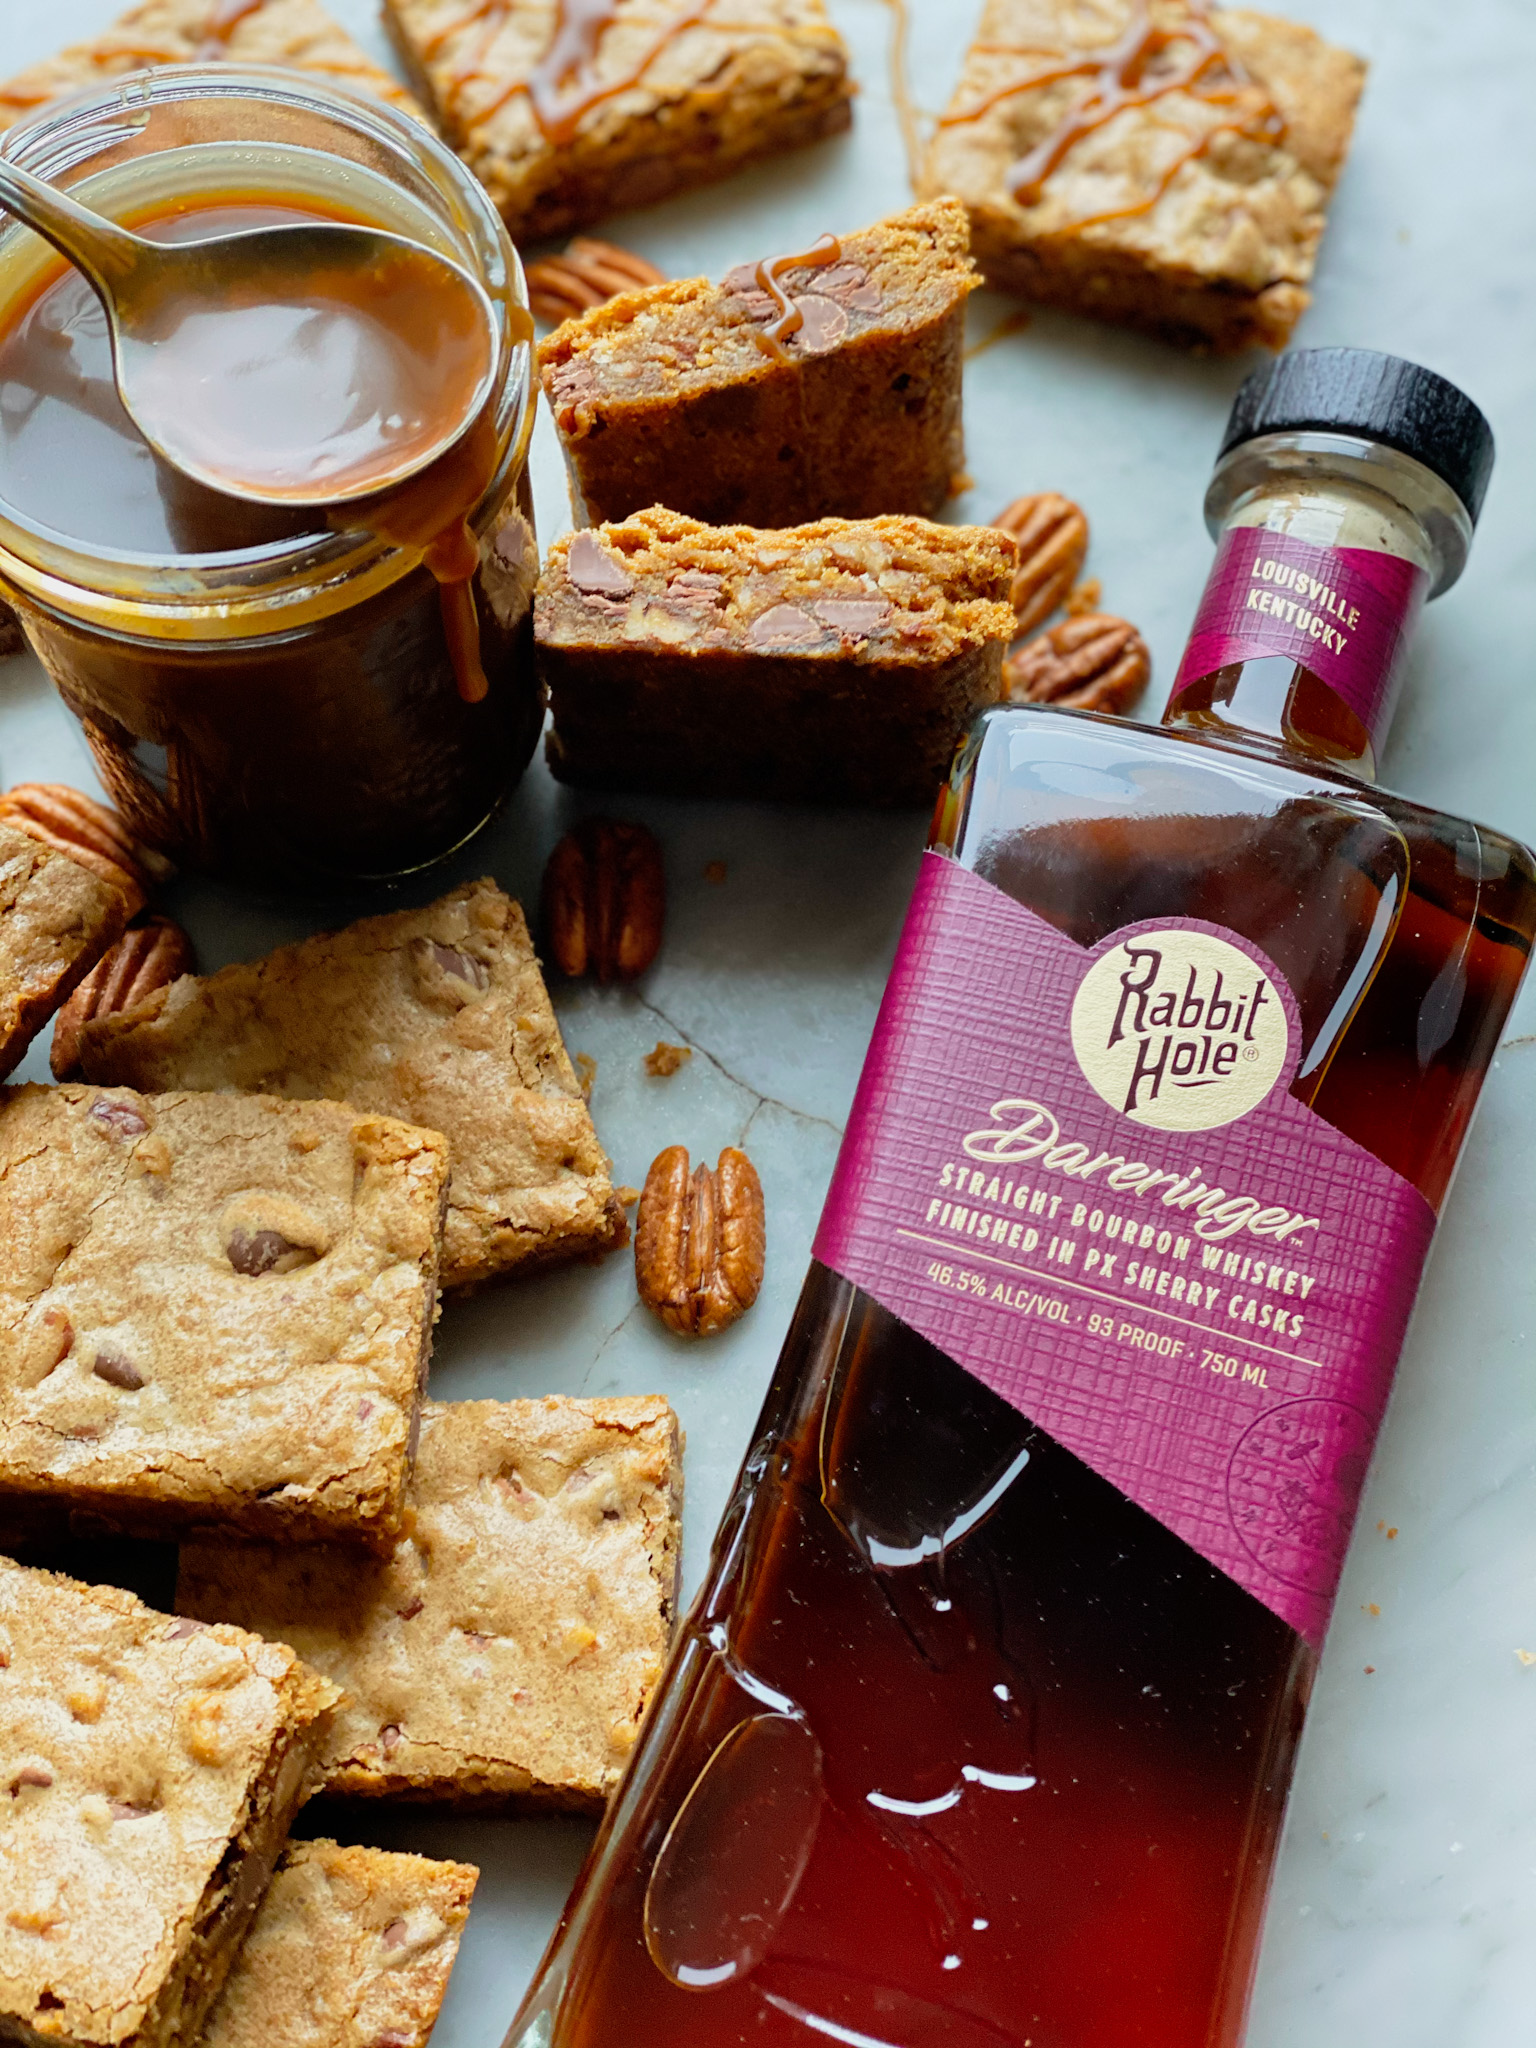 Bourbon pecan chocolate chip blondies and a bottle of rabbit hole bourbon and salted caramel blondies